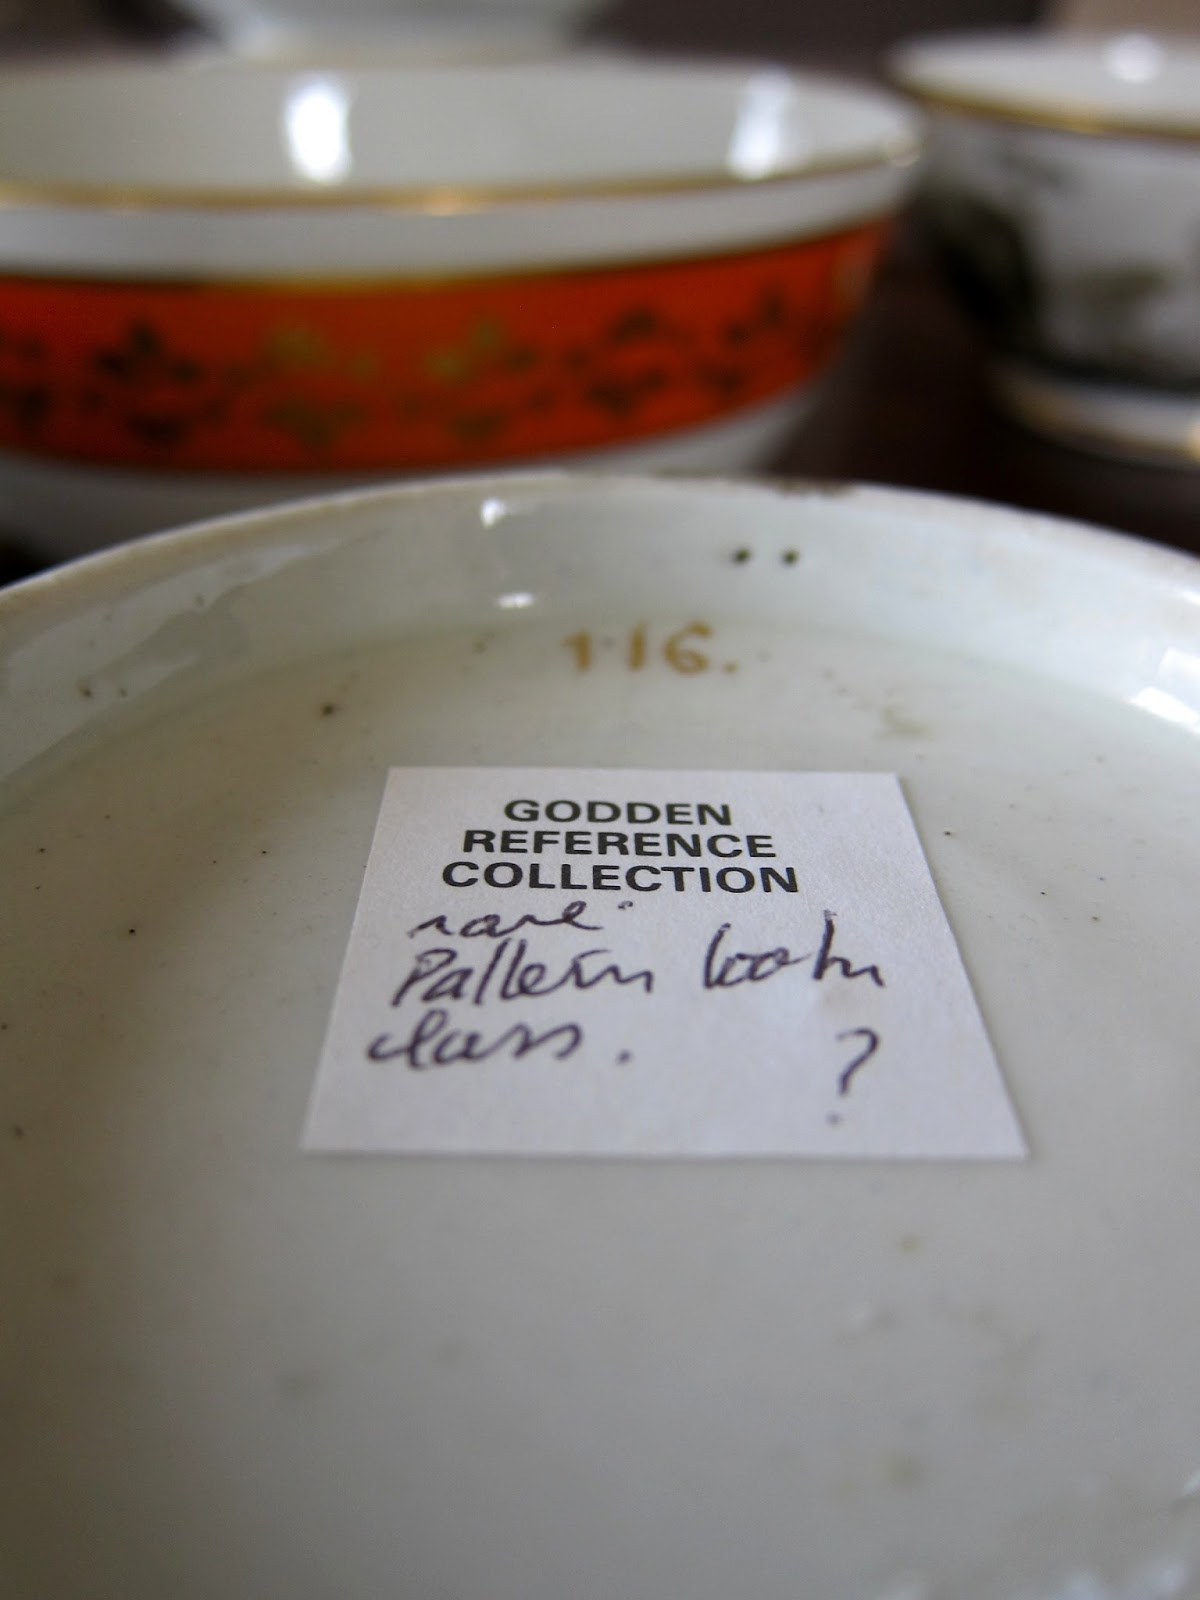 Chronica domus arcane dining oddities the slop bowl for Domus book collection